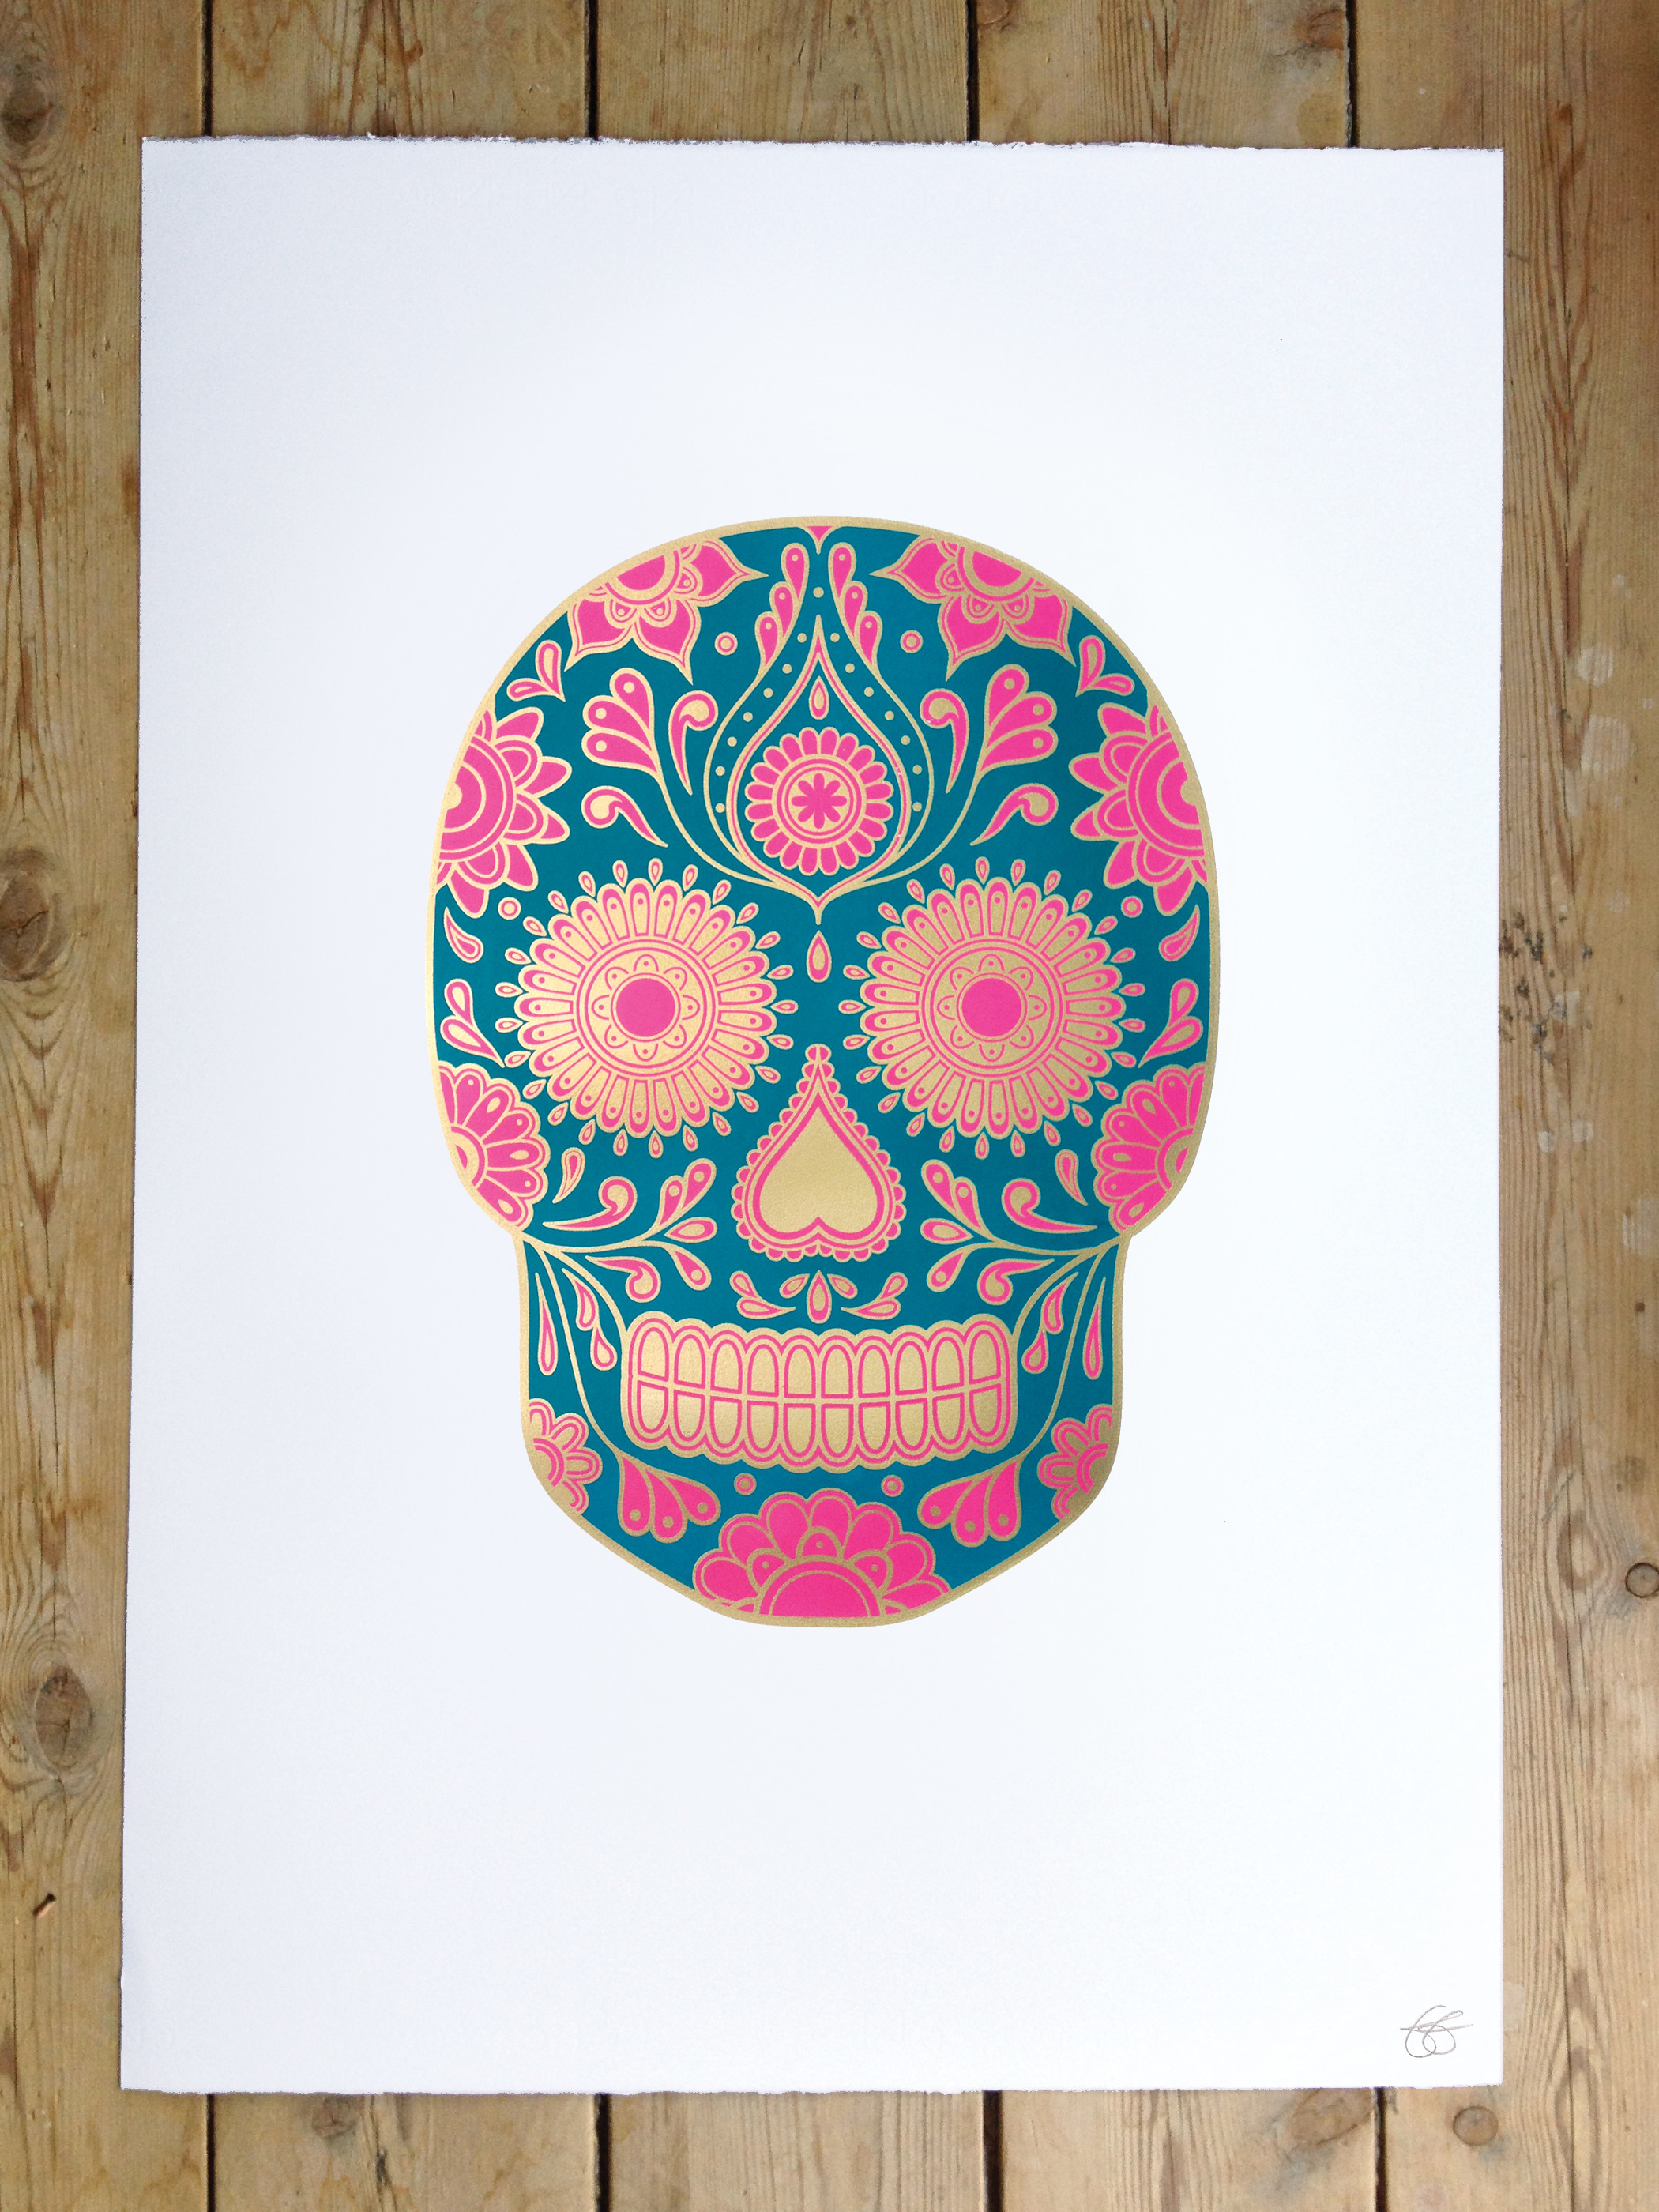 2100x2800 Sugar Skulls Wallpaper Sugar skull wallpaper,